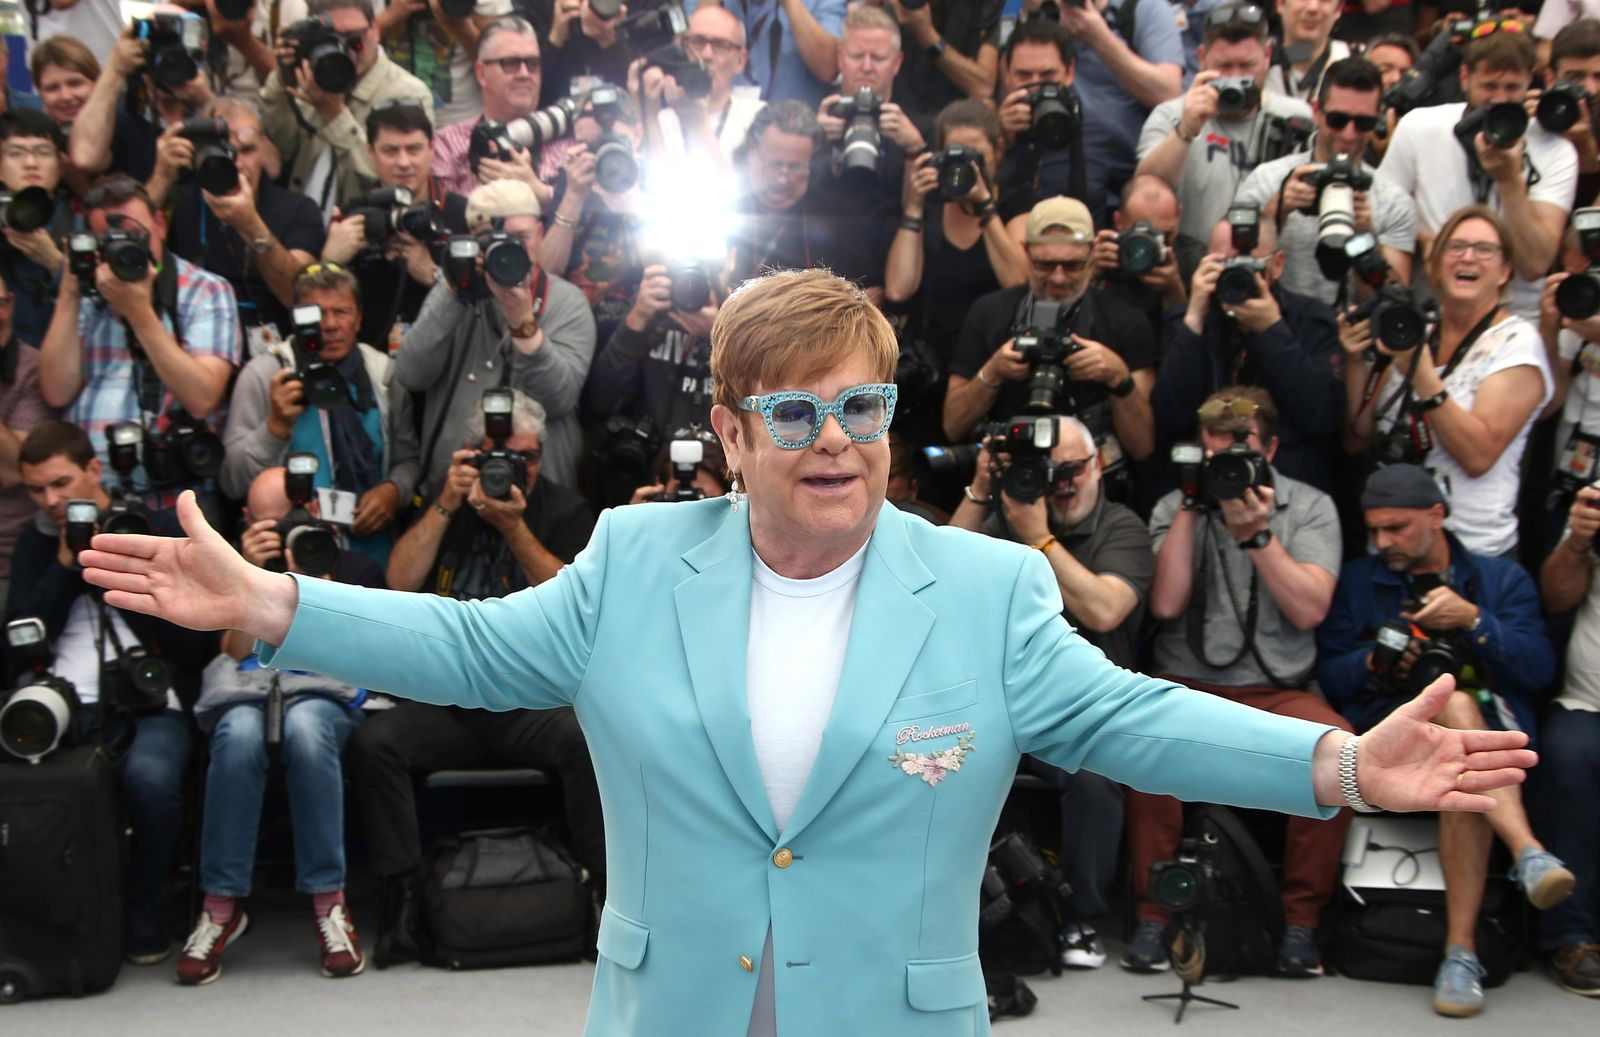 Singer Elton John poses for photographers at the photo call for the film 'Rocketman' at the 72nd international film festival, Cannes, southern France, Thursday, May 16, 2019. (Photo by Joel C Ryan/Invision/AP)